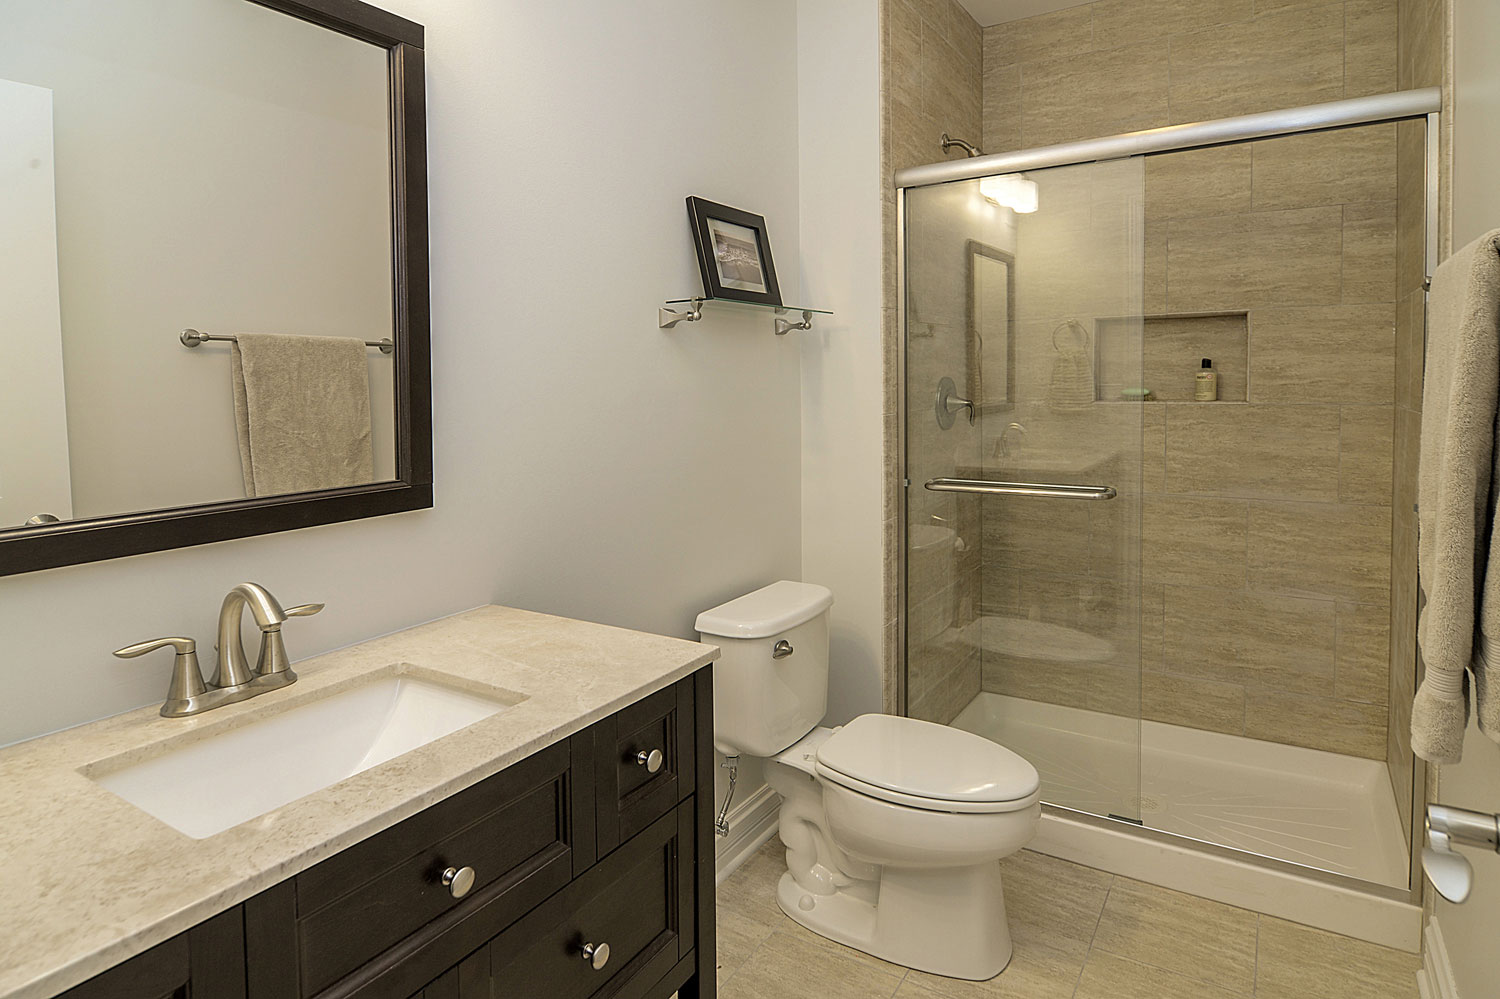 Steve emily 39 s hall bathroom remodel pictures home for Bathroom ideas remodel